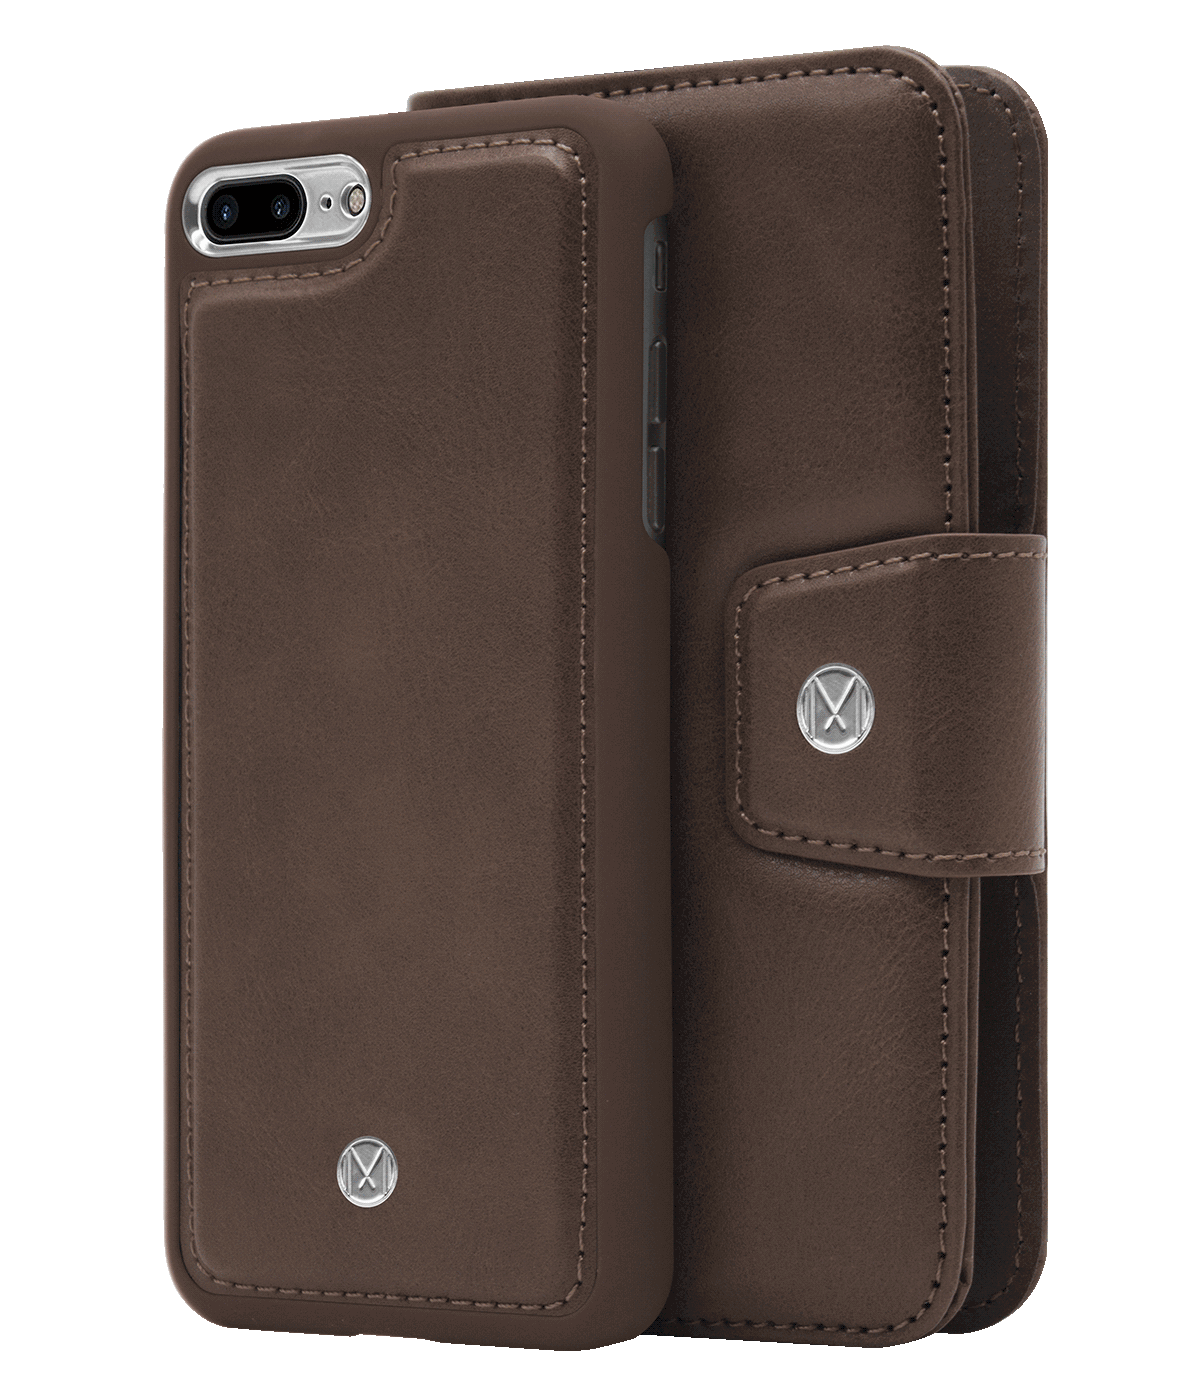 3a70f02f635 Magnetic Flip Case   Wallet   iPhone 8 Plus